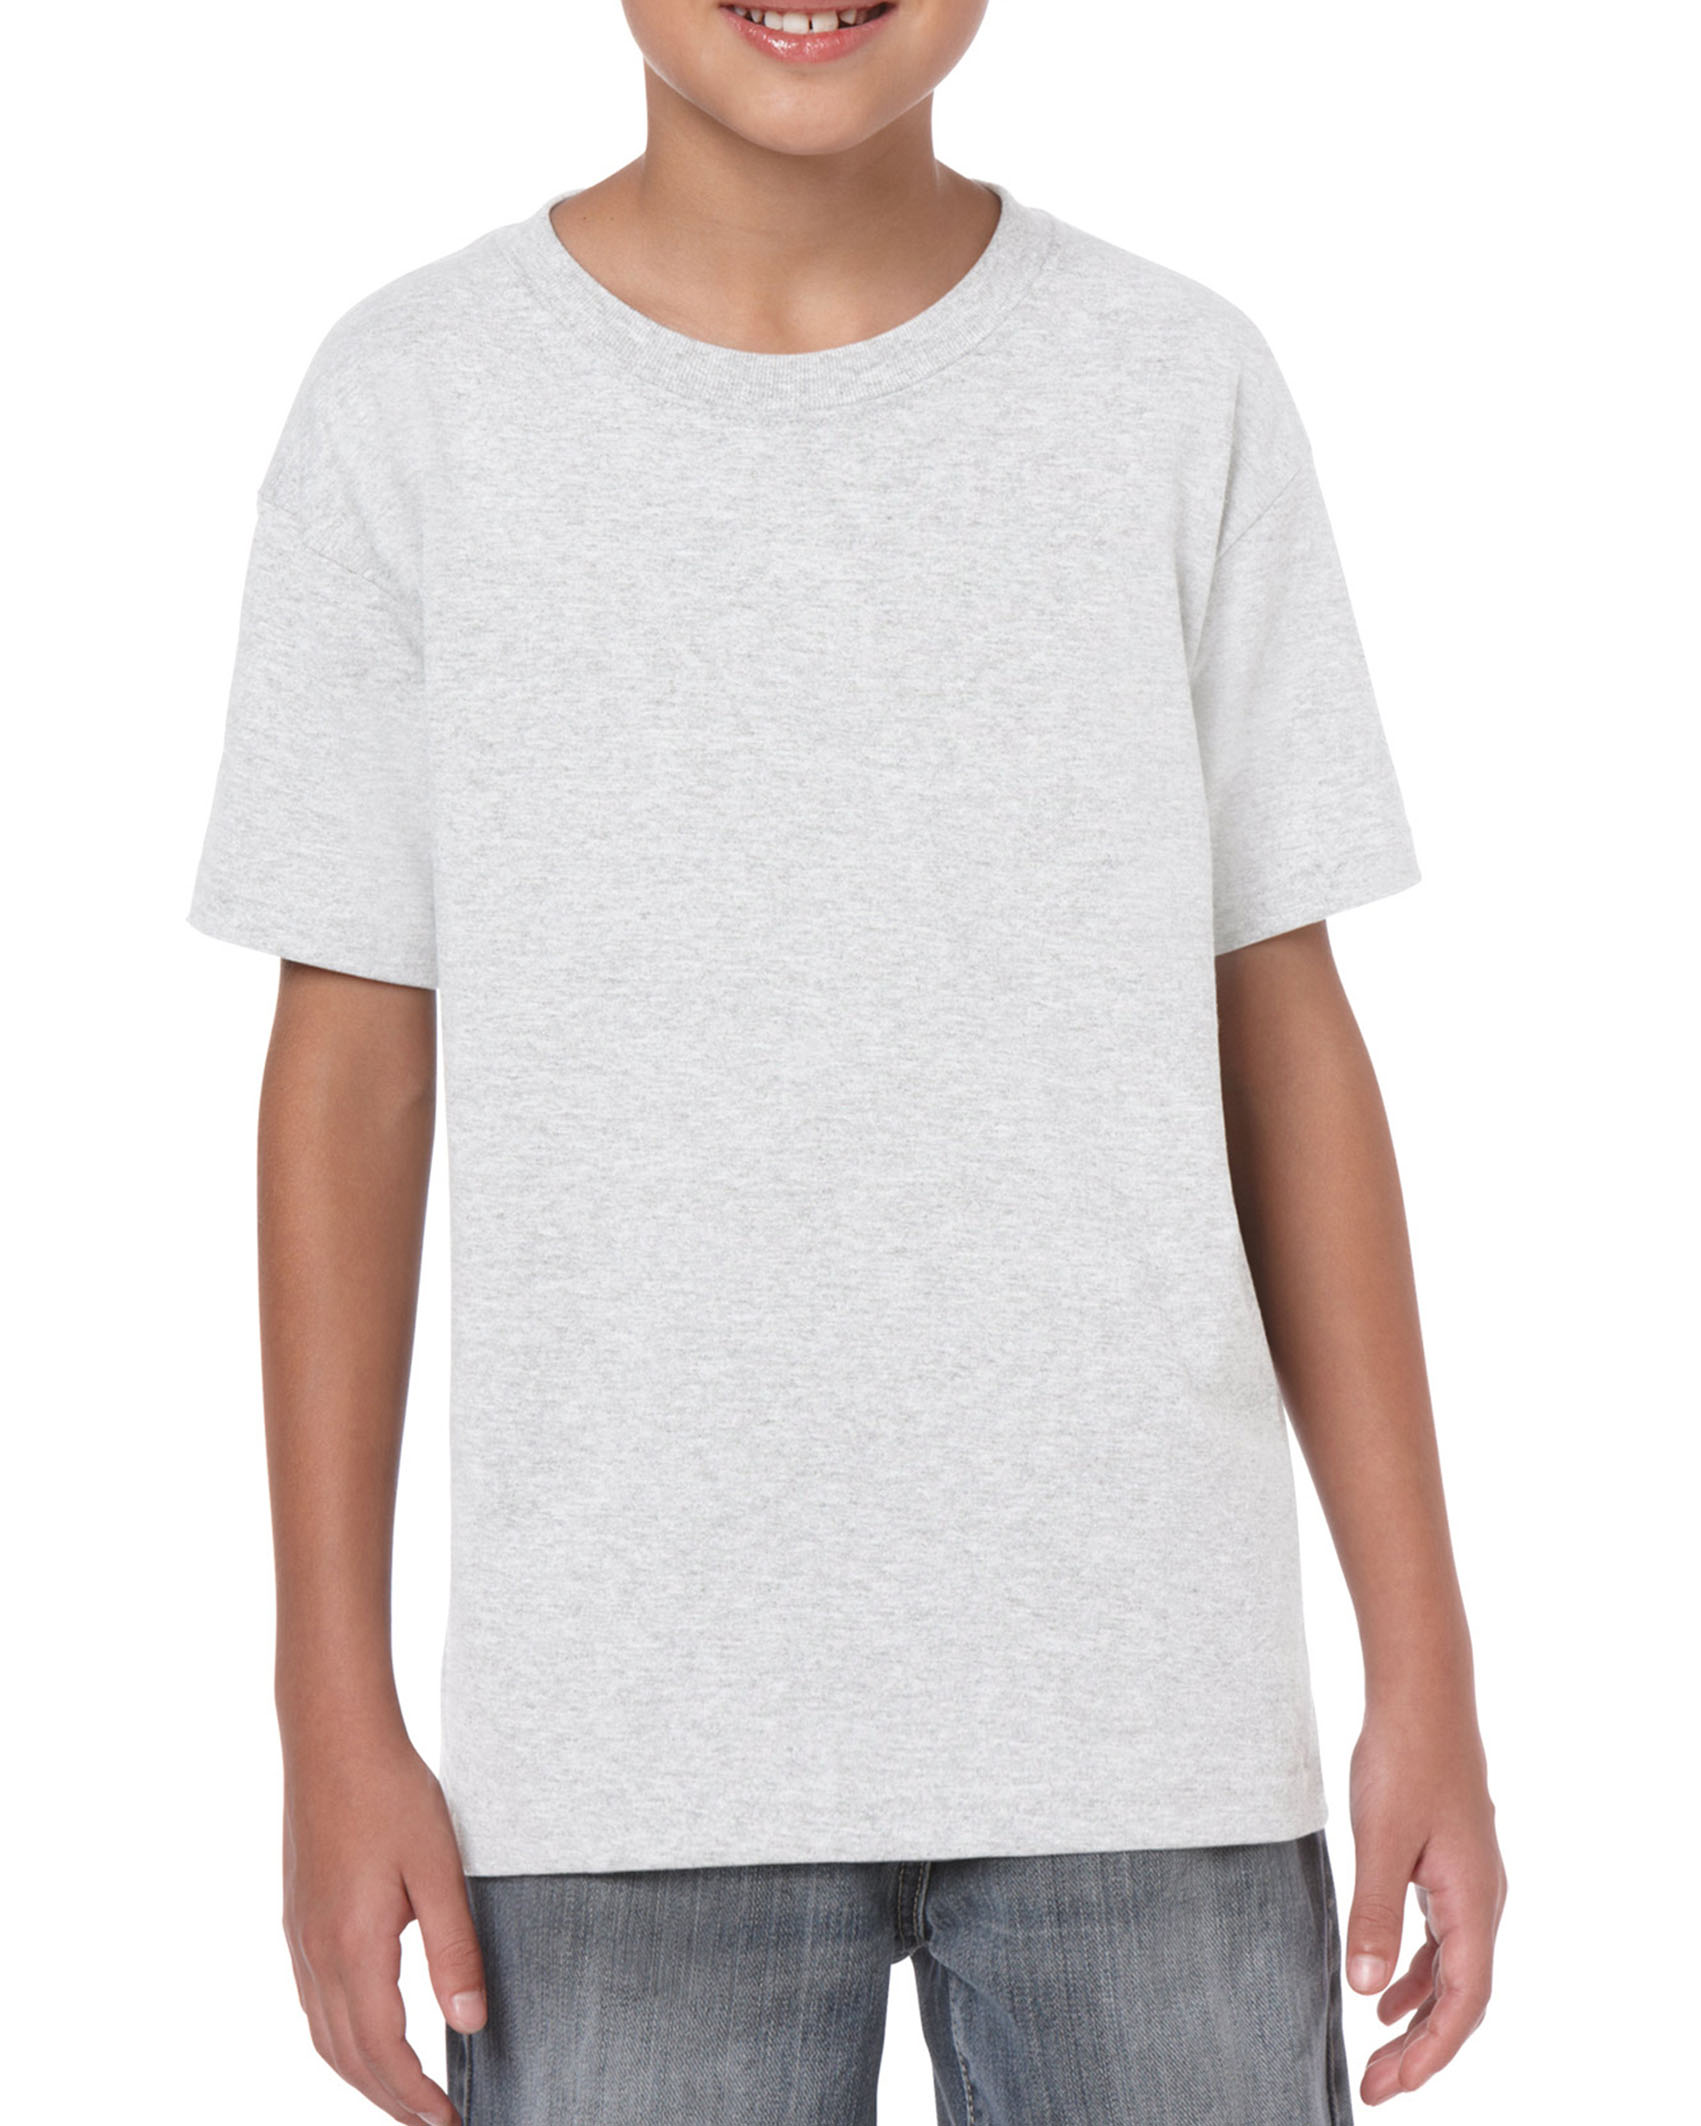 Gildan T-shirt Heavy Cotton SS for kids